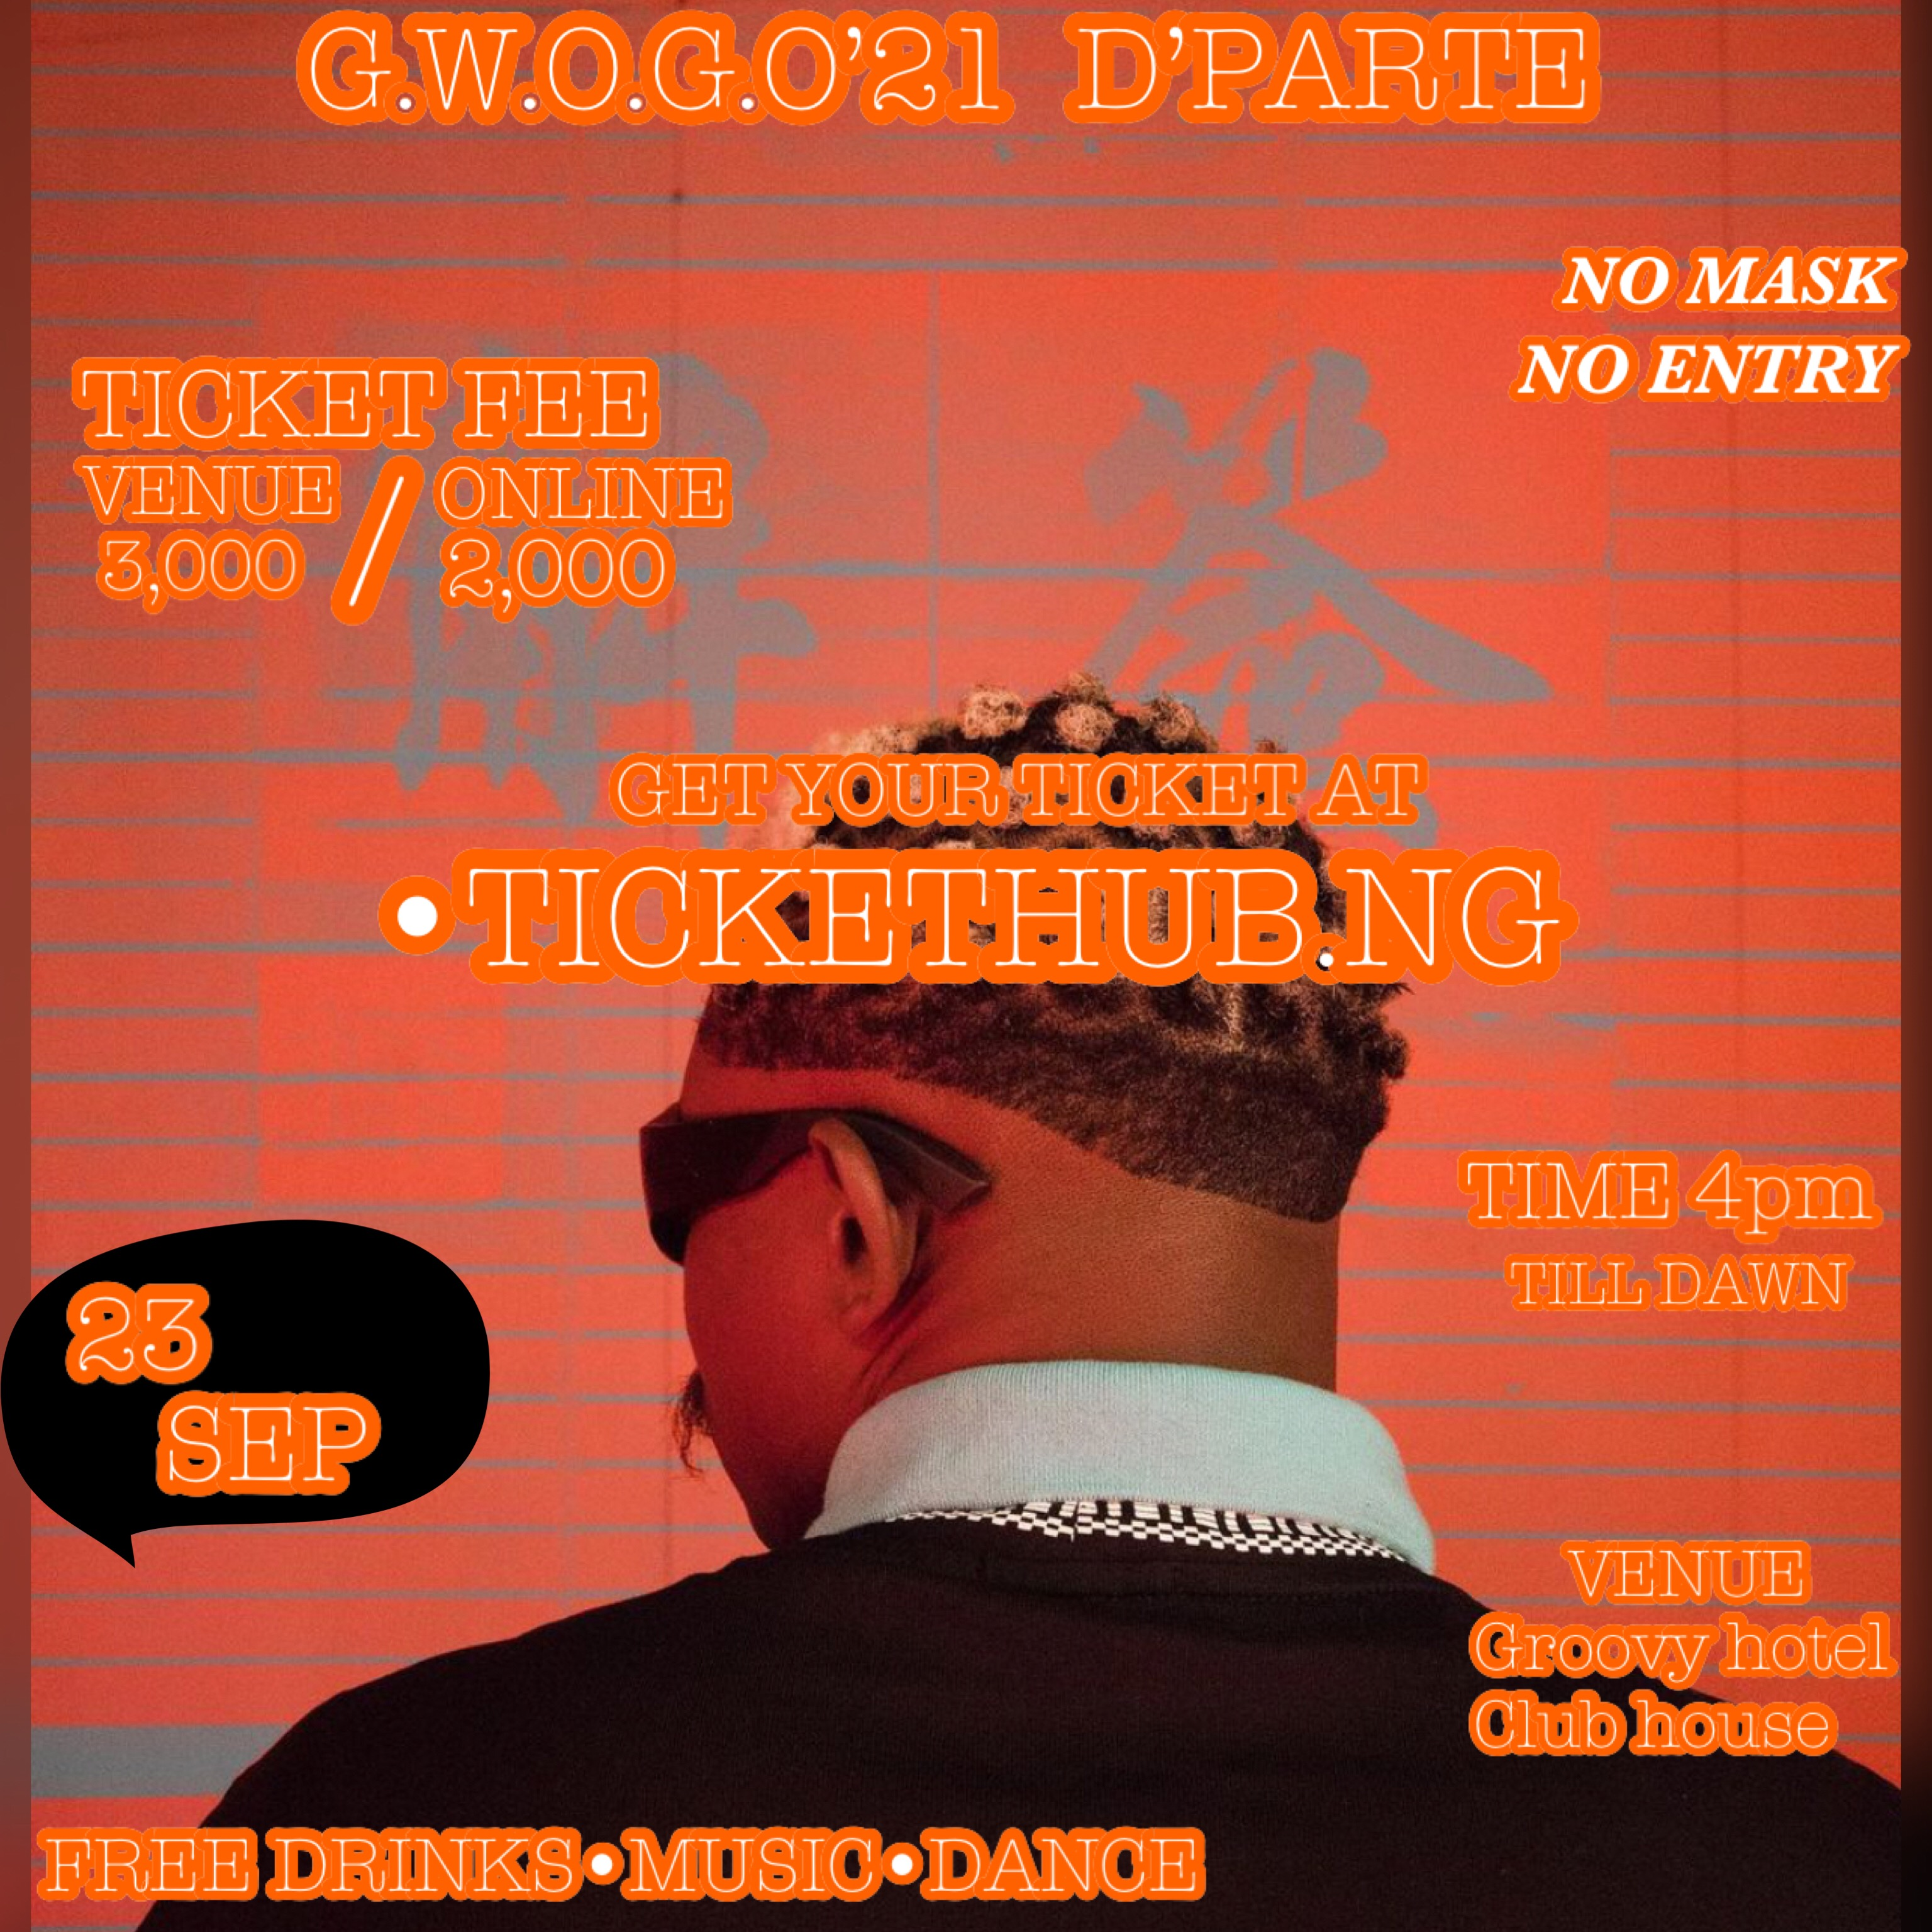 G.W.O.G.O'21 THE PARTY Post free event in Nigeria using tickethub.ng, buy and sell tickets to event